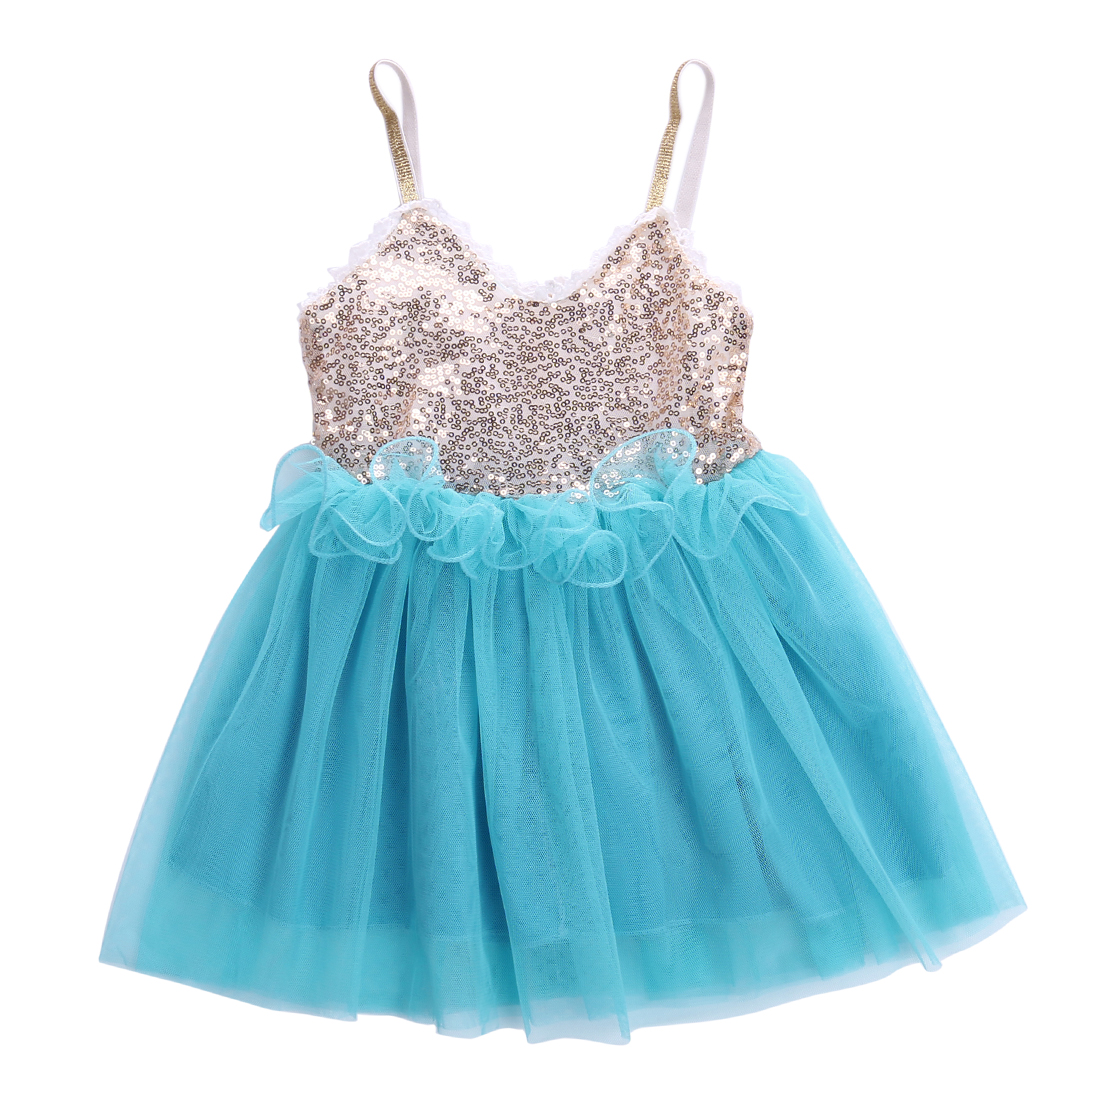 2017 New Baby Girl Clothes Clothing Sequins Princess Dress Lace ...